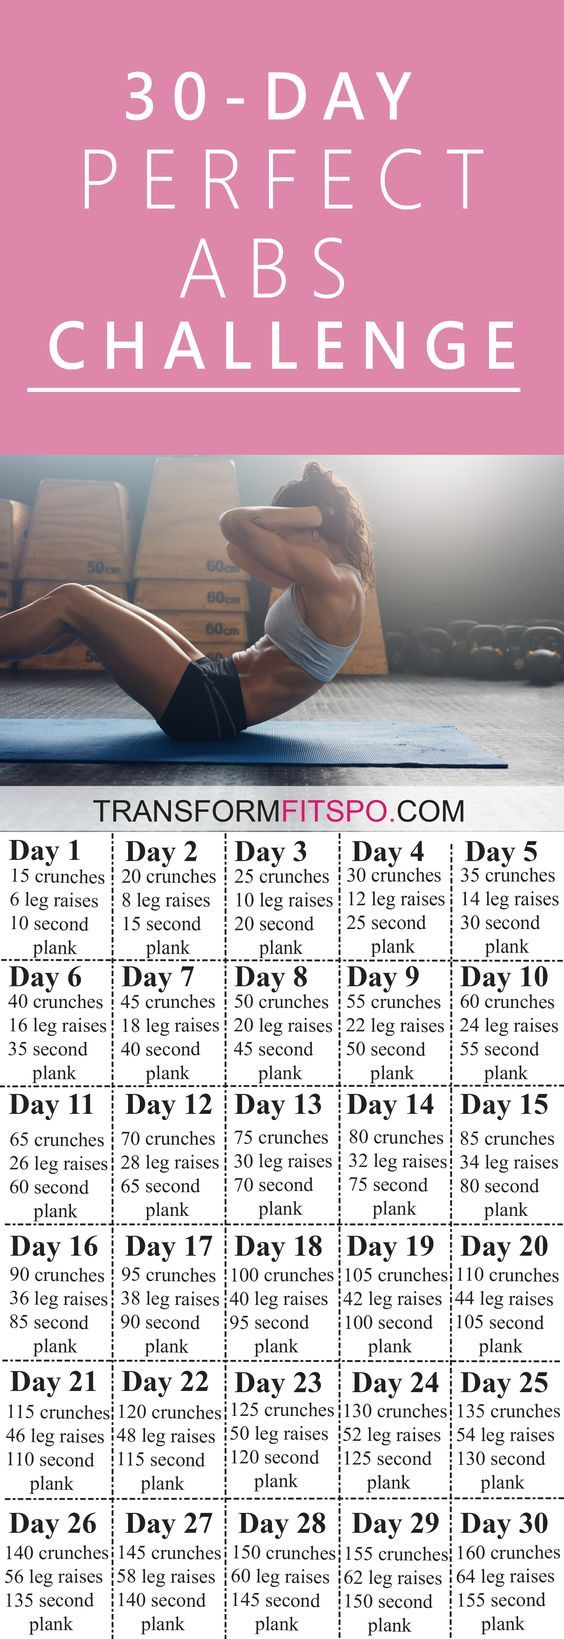 Perfect Abs 30 Day Challenge - One month of workouts to melt belly fat and tone abs! #workoutchallenge